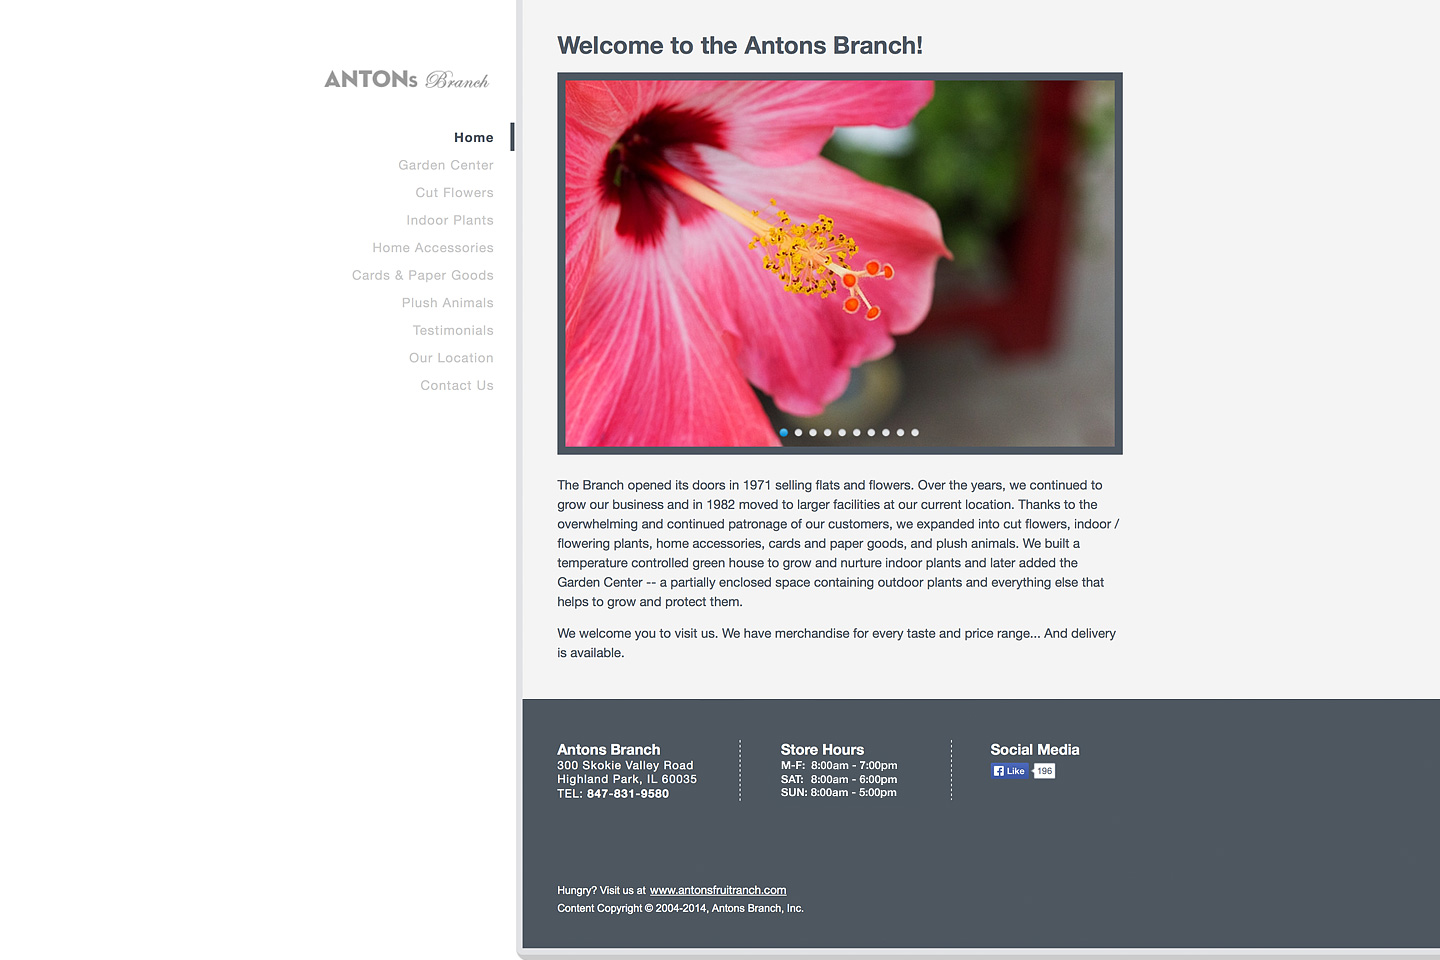 a screen capture of the homepage of the antons branch website, featuring a beautiful pink hibiscus flower